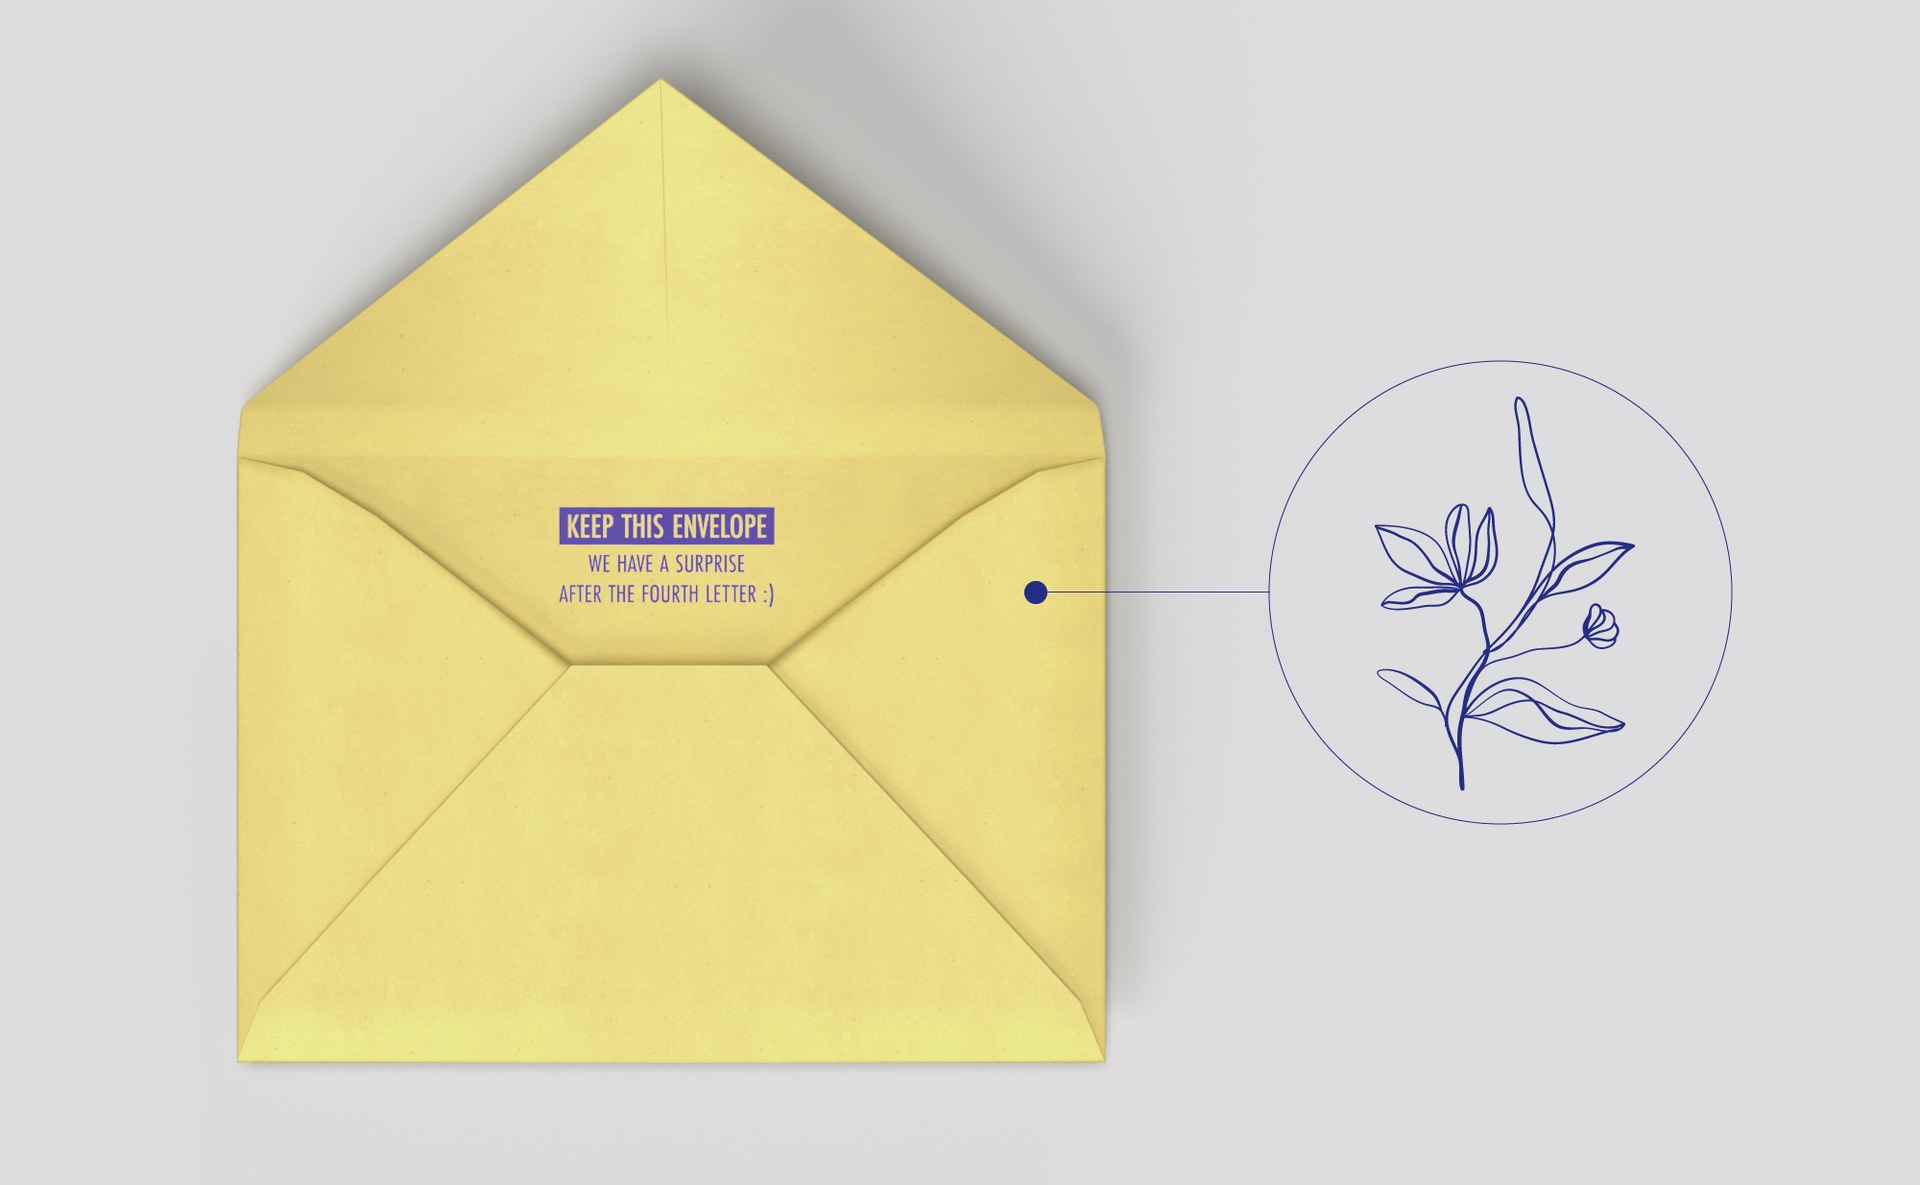 Reduced paper waste through reusable seed paper